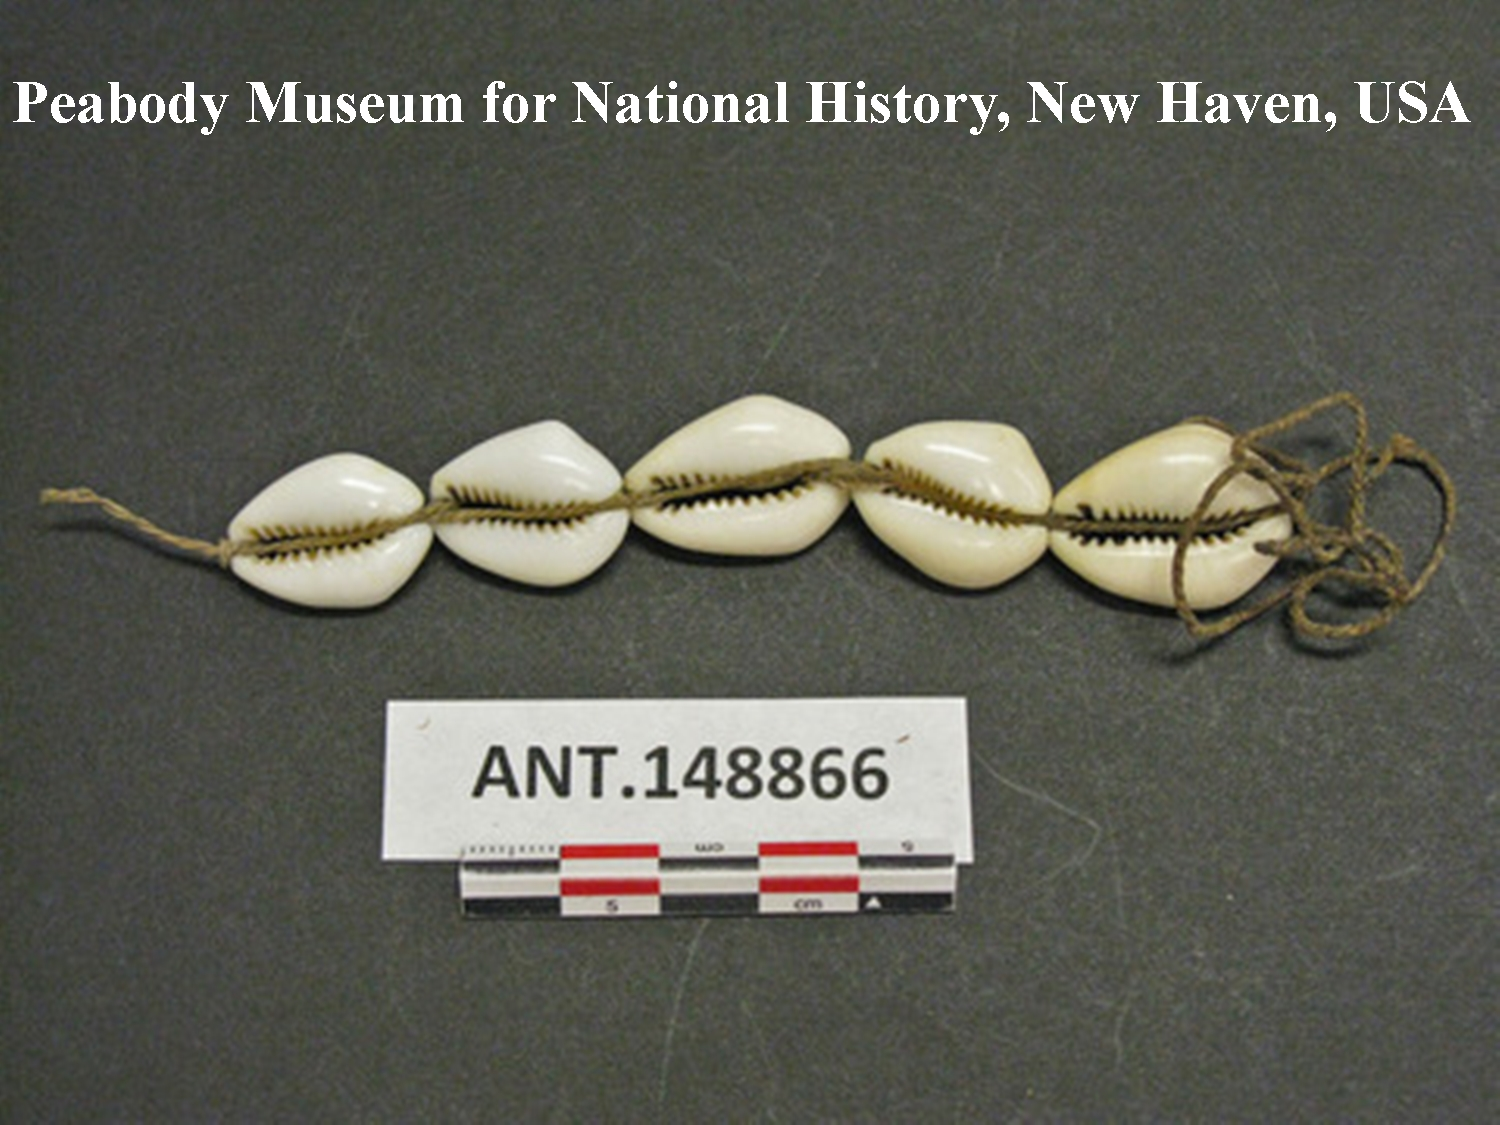 """Abb. 4: """"tuani mege"""", von den Weißen eingeführt, aber schon lange im Gebrauch. Beschreibung: 5 cowry shell strung on inner bark string, used as shell money """"tuani mege"""" (im Text auch """"tuanikaa"""" genannt) all introduced by white man, but longer time in use. Low value. Length 4 ¼ in. Southern Kamu Valley, Kapauku. Netherlands New Guinea."""